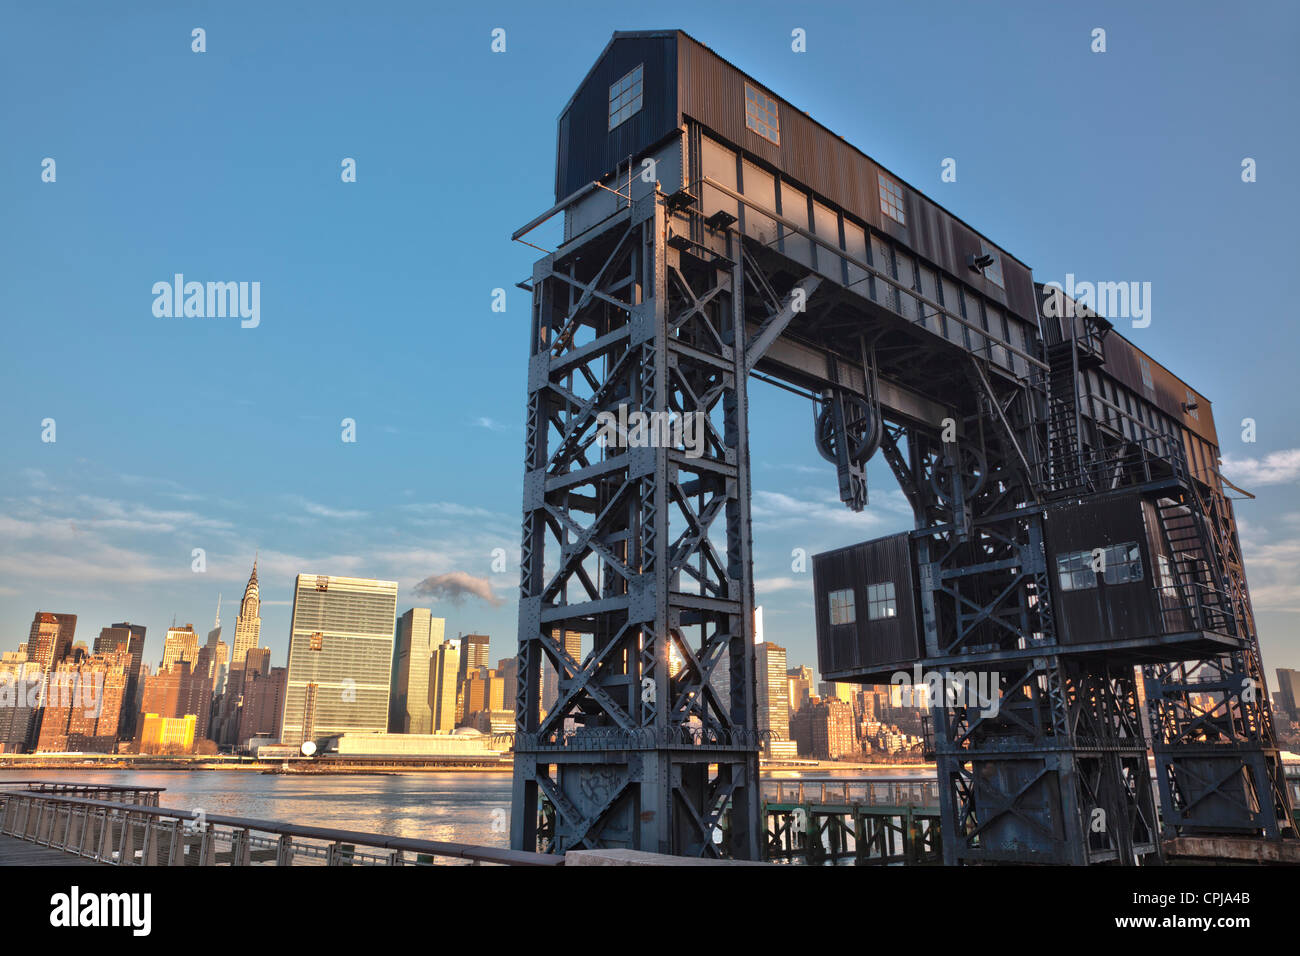 New York City skyline of Midtown Manhattan, viewed from Gantry Park in Brooklyn, New York City. - Stock Image